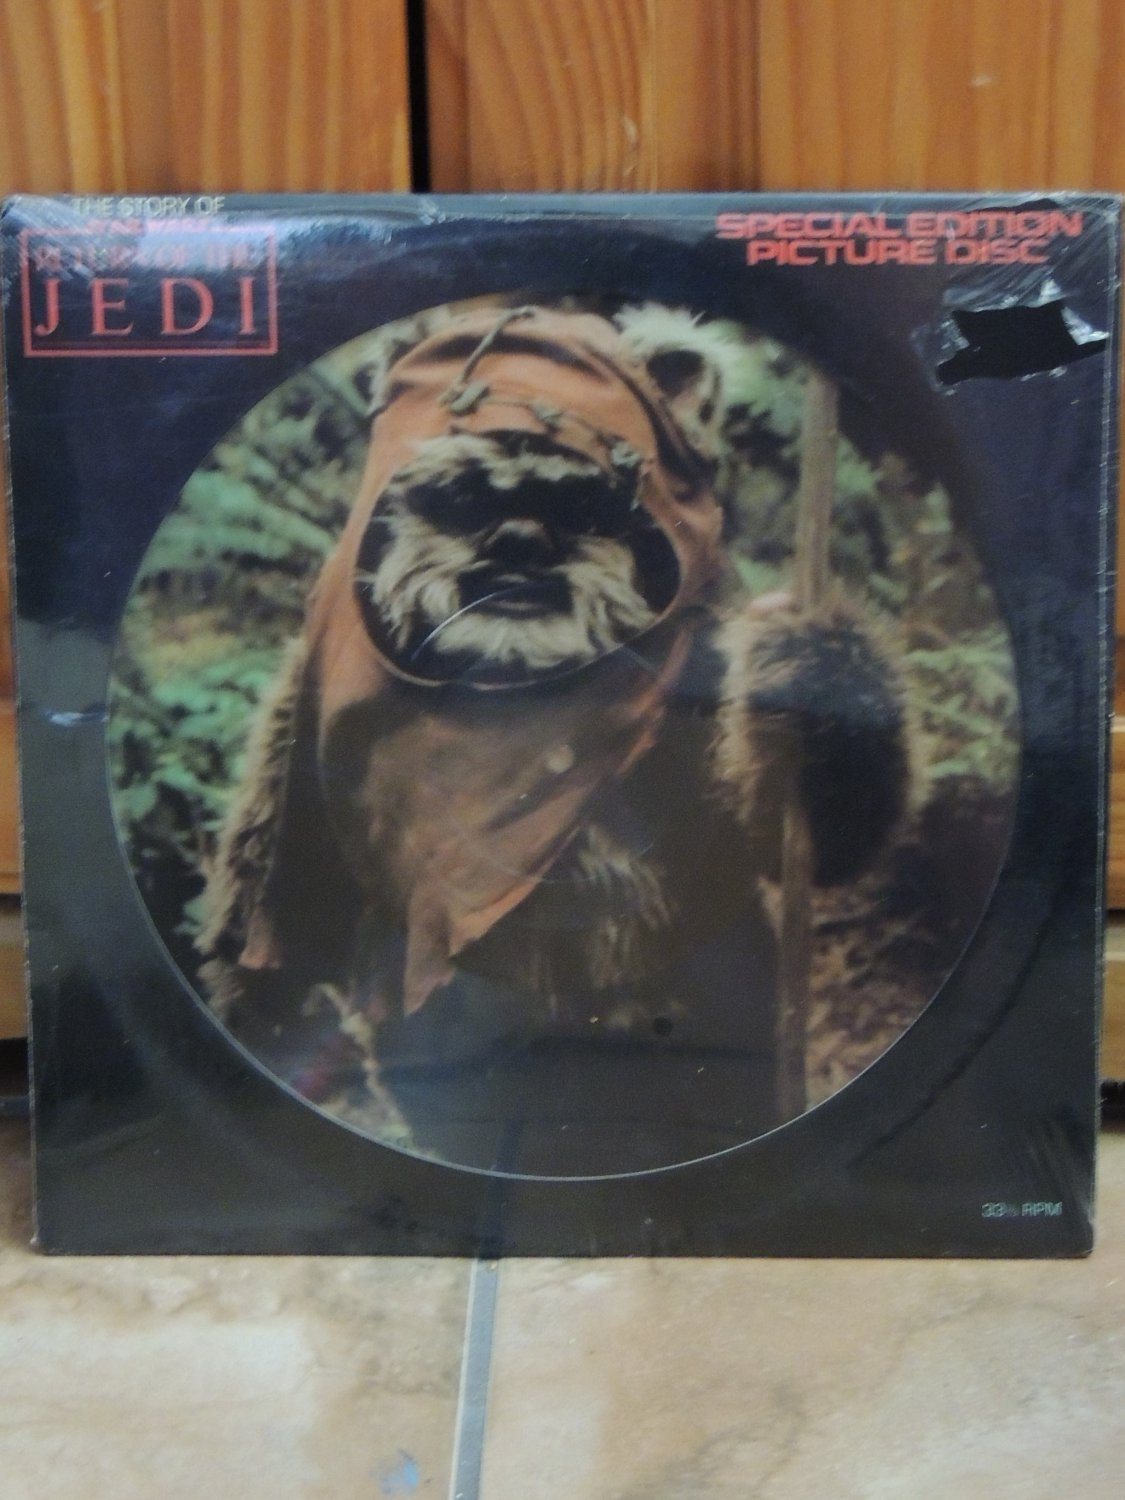 New! Vintage Return of the Jedi Story Picture Disc LP Record